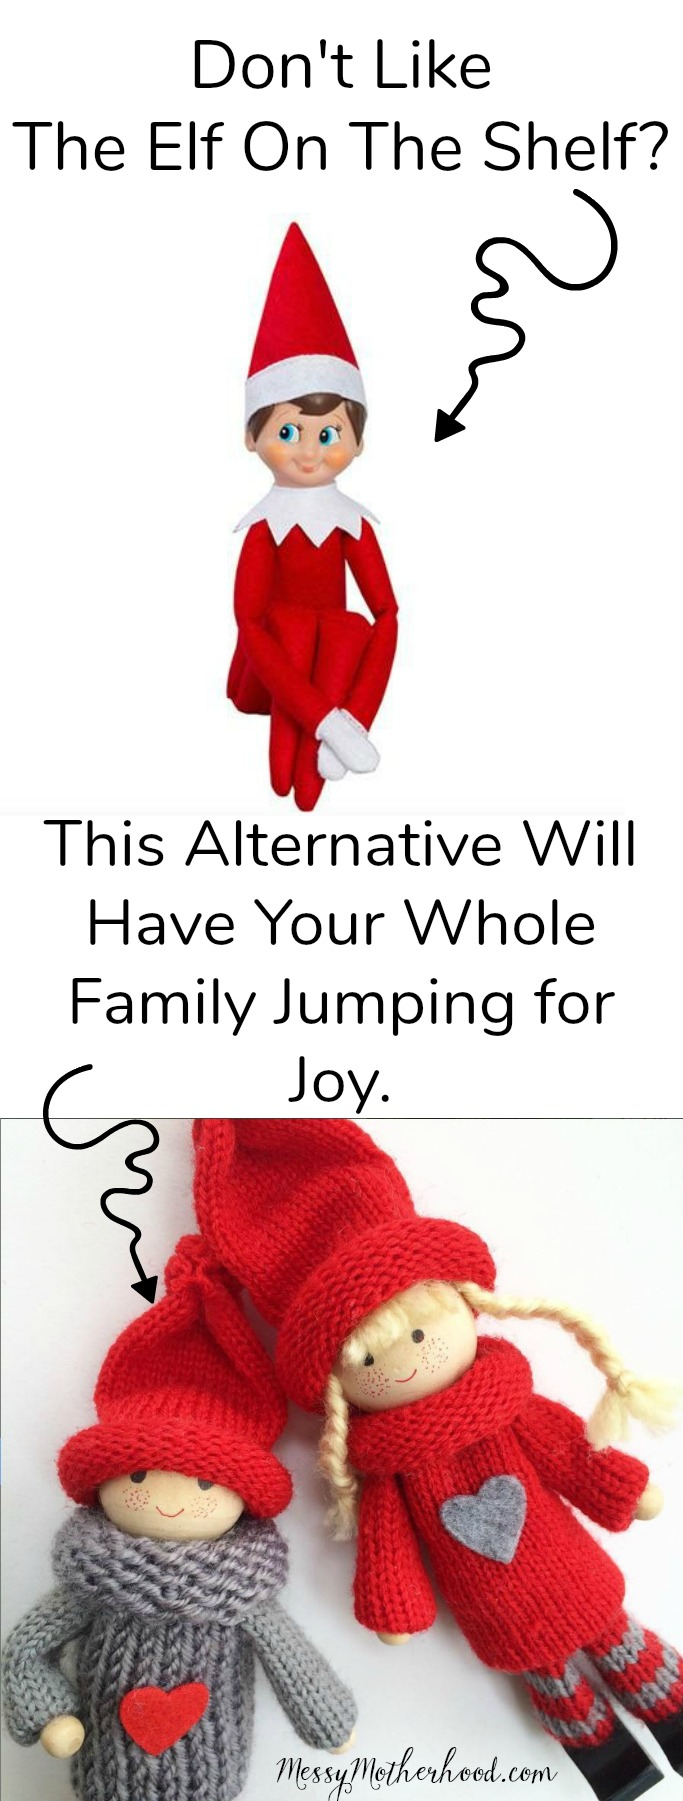 Perfect for those of us who don't like The Elf On The Shelf. The Kindness Elves are wonderful!